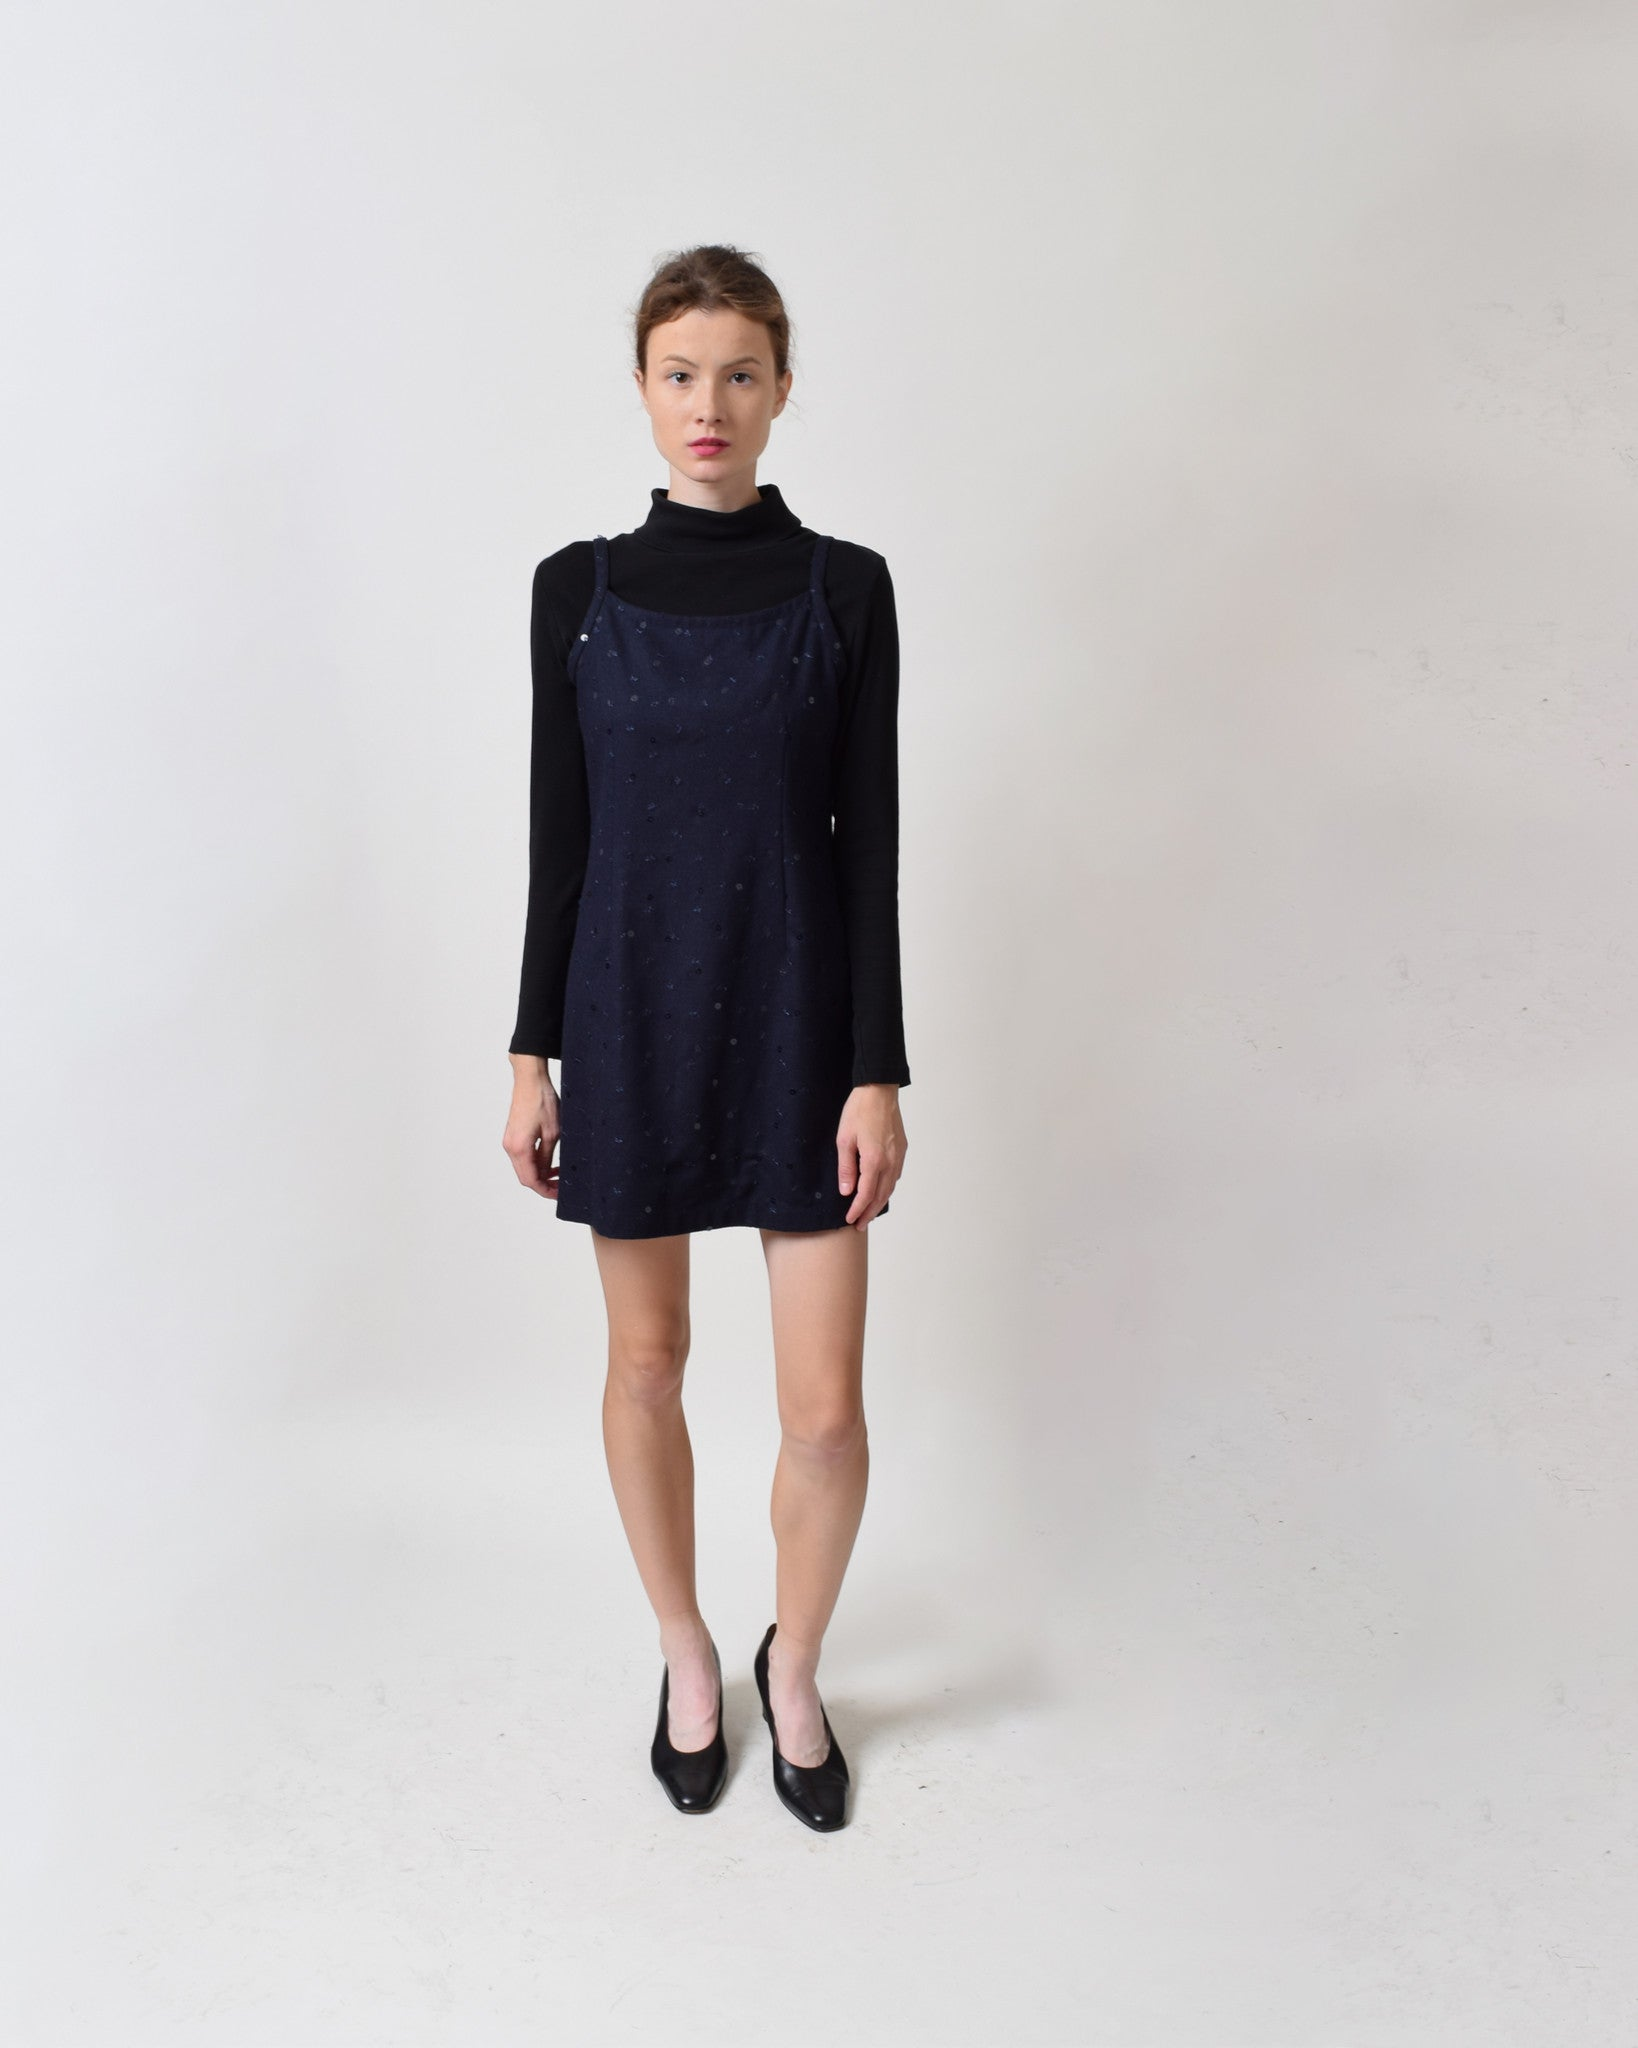 Vintage 1990s Wool Jumper Dress